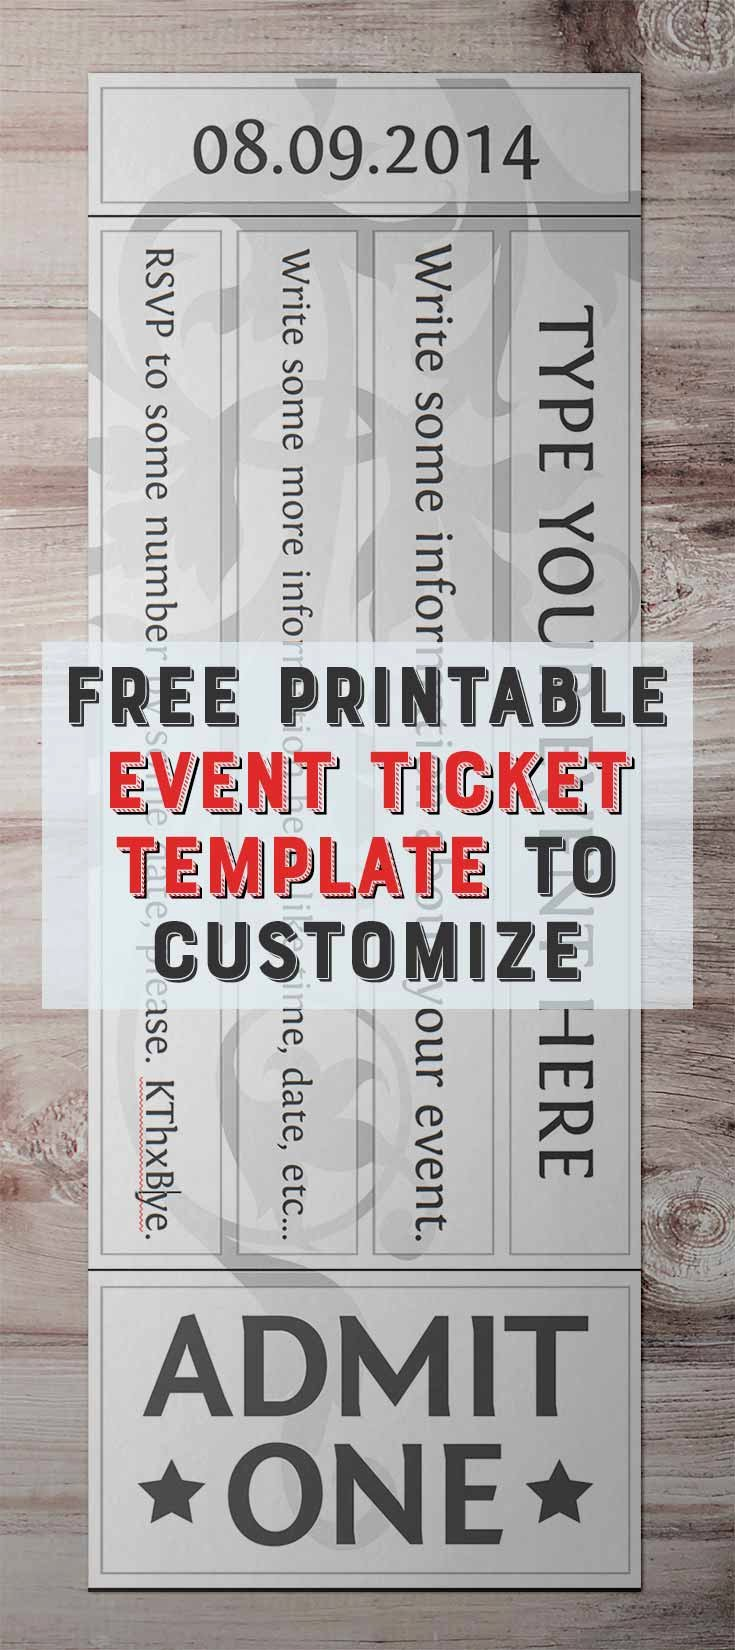 Print Tickets Free Template Fresh Free Printable event Ticket Template to Customize